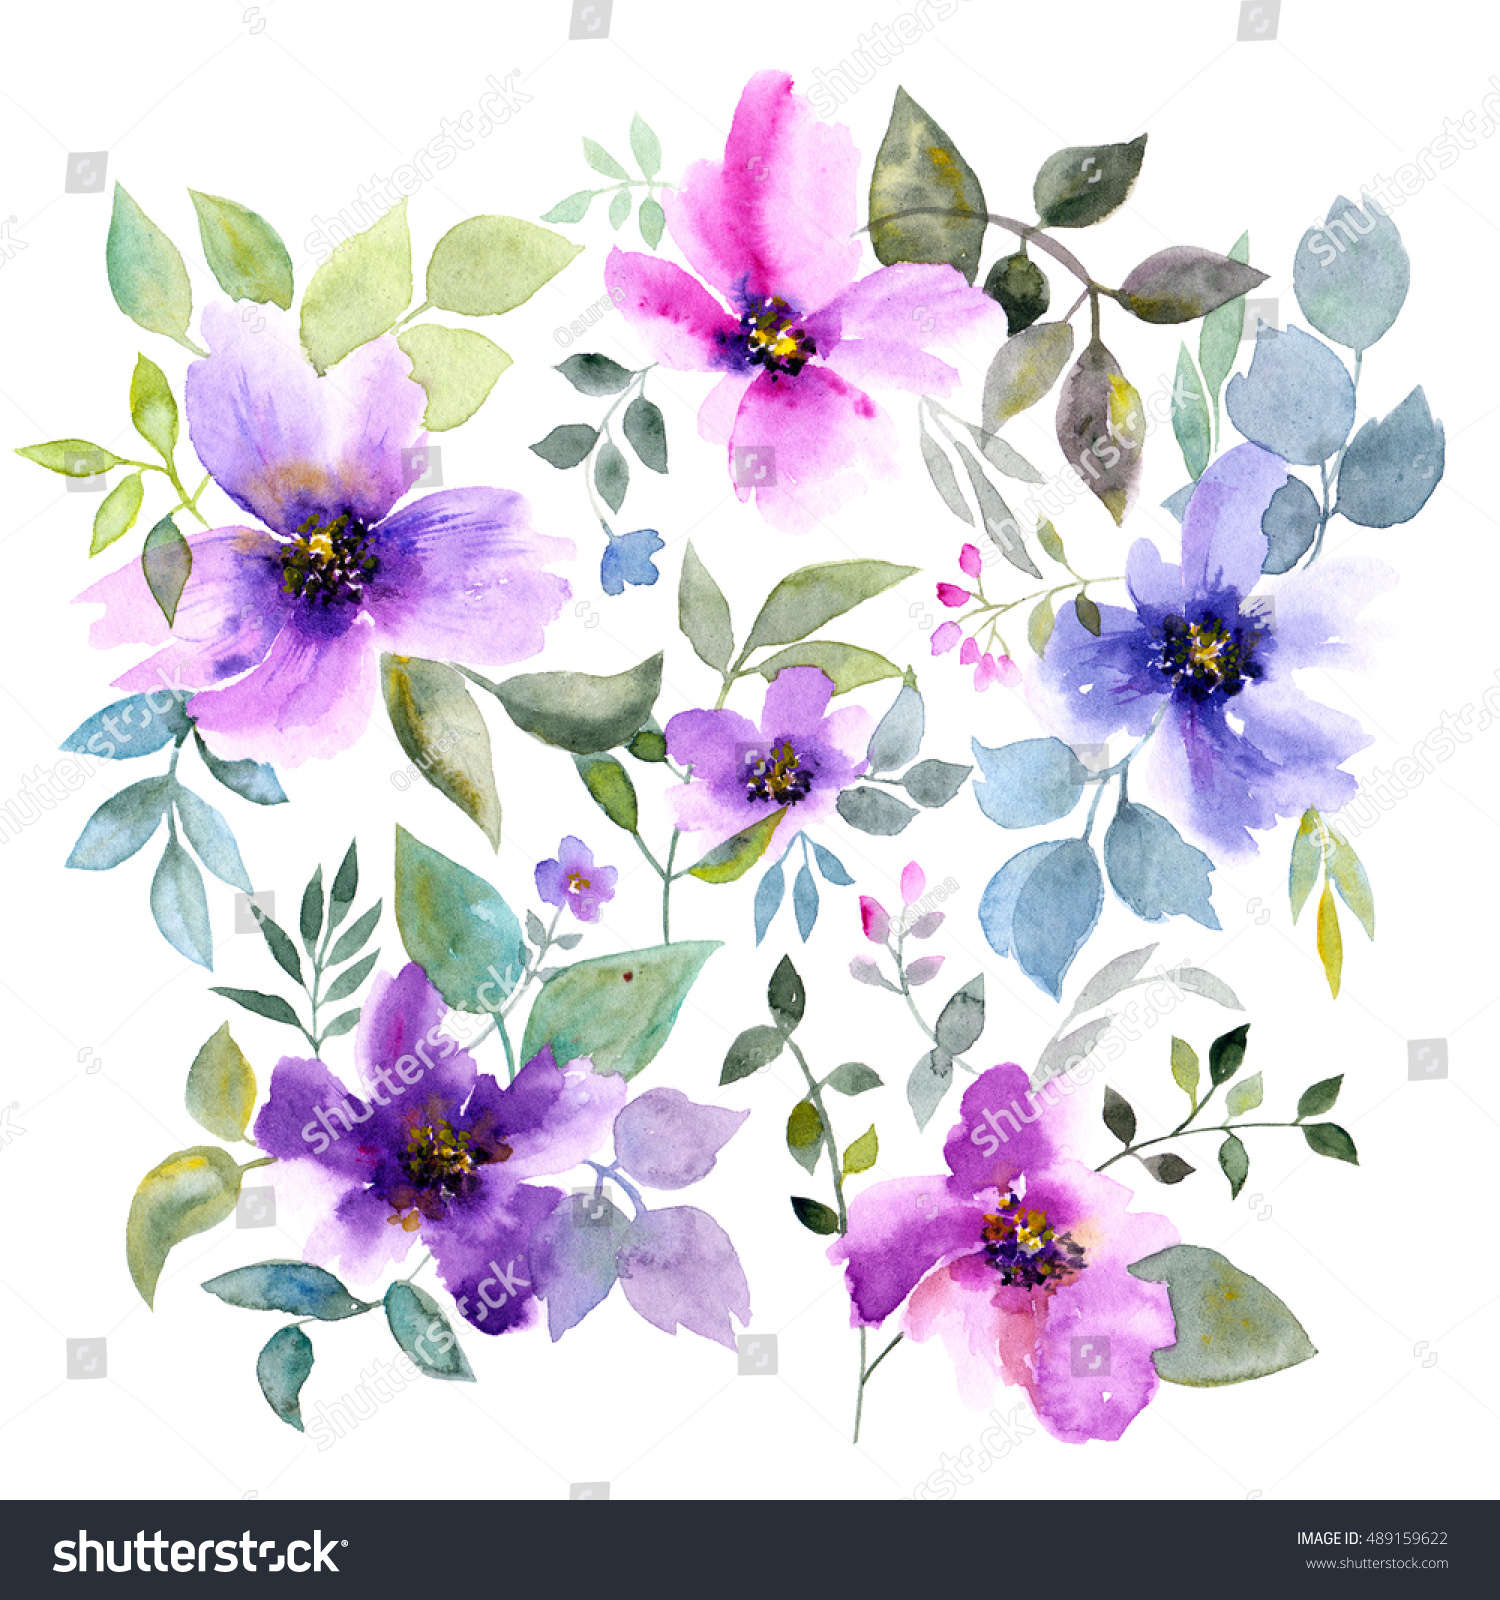 Greeting Card Flowers Watercolor Floral Bouquet Stock Illustration